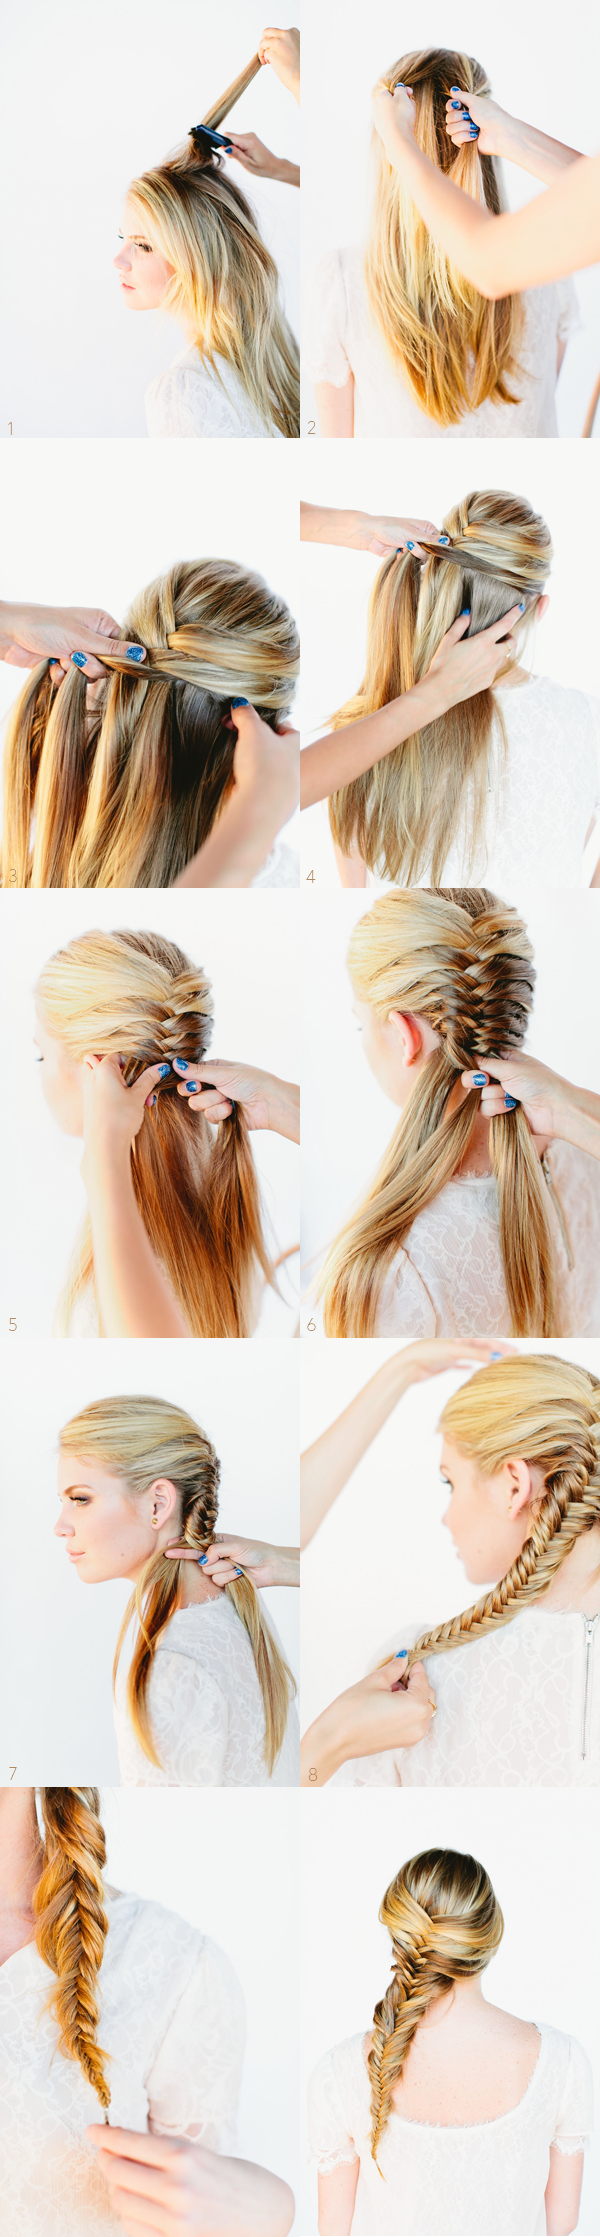 Hairstyles For Long Hair Braids PictureFuneral Program Designs